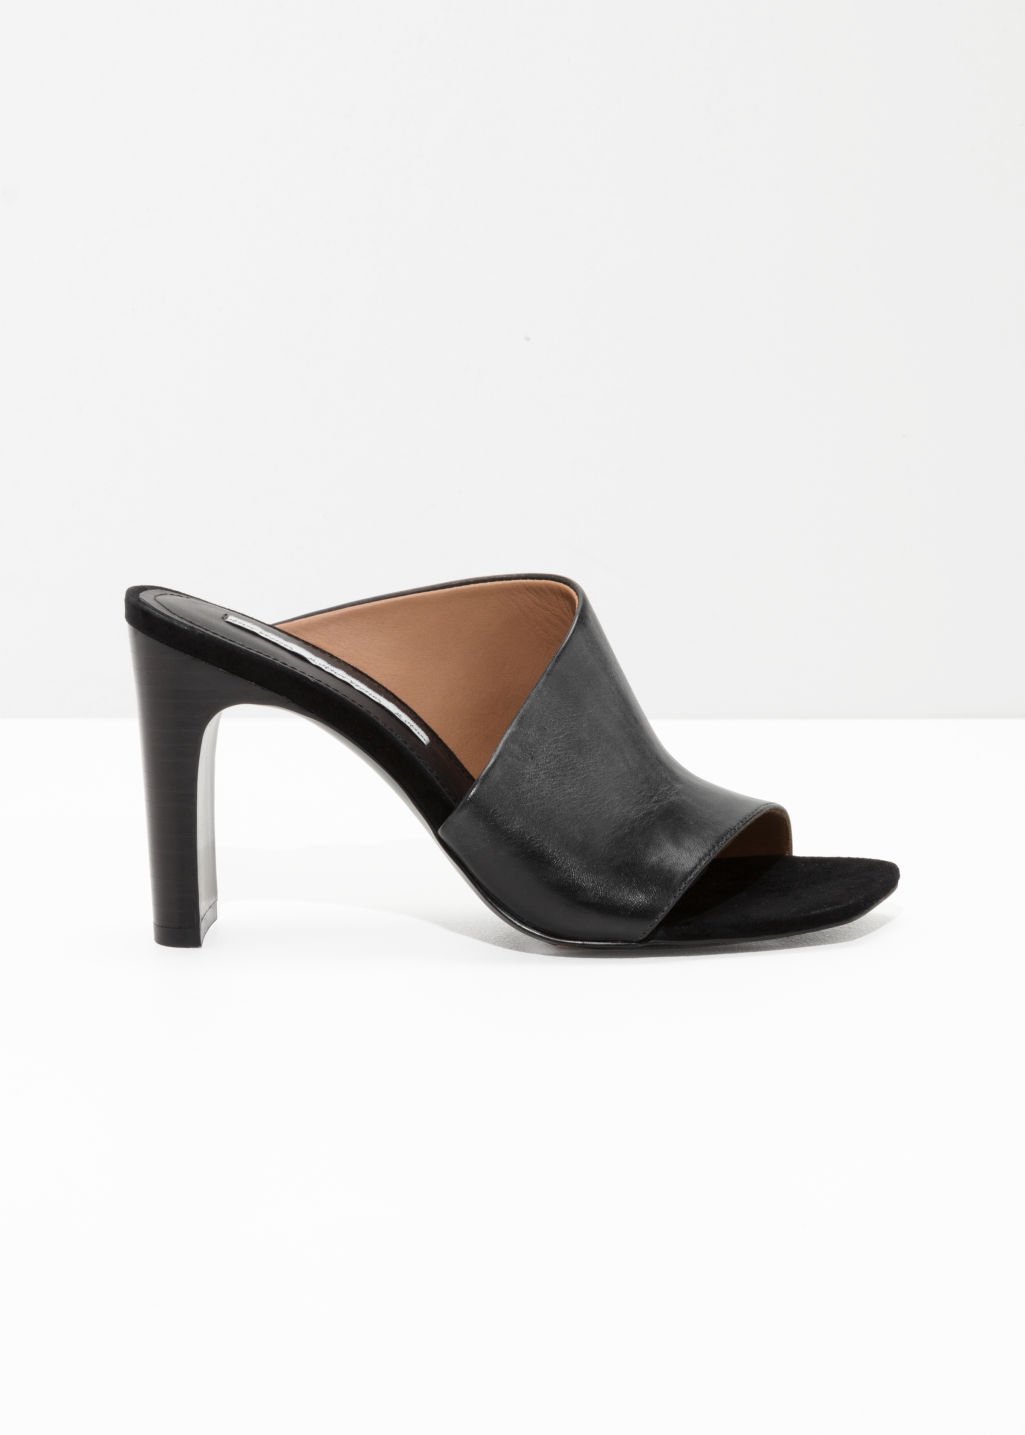 & OTHER STORIES Asymmetrical Open Toe Pumps